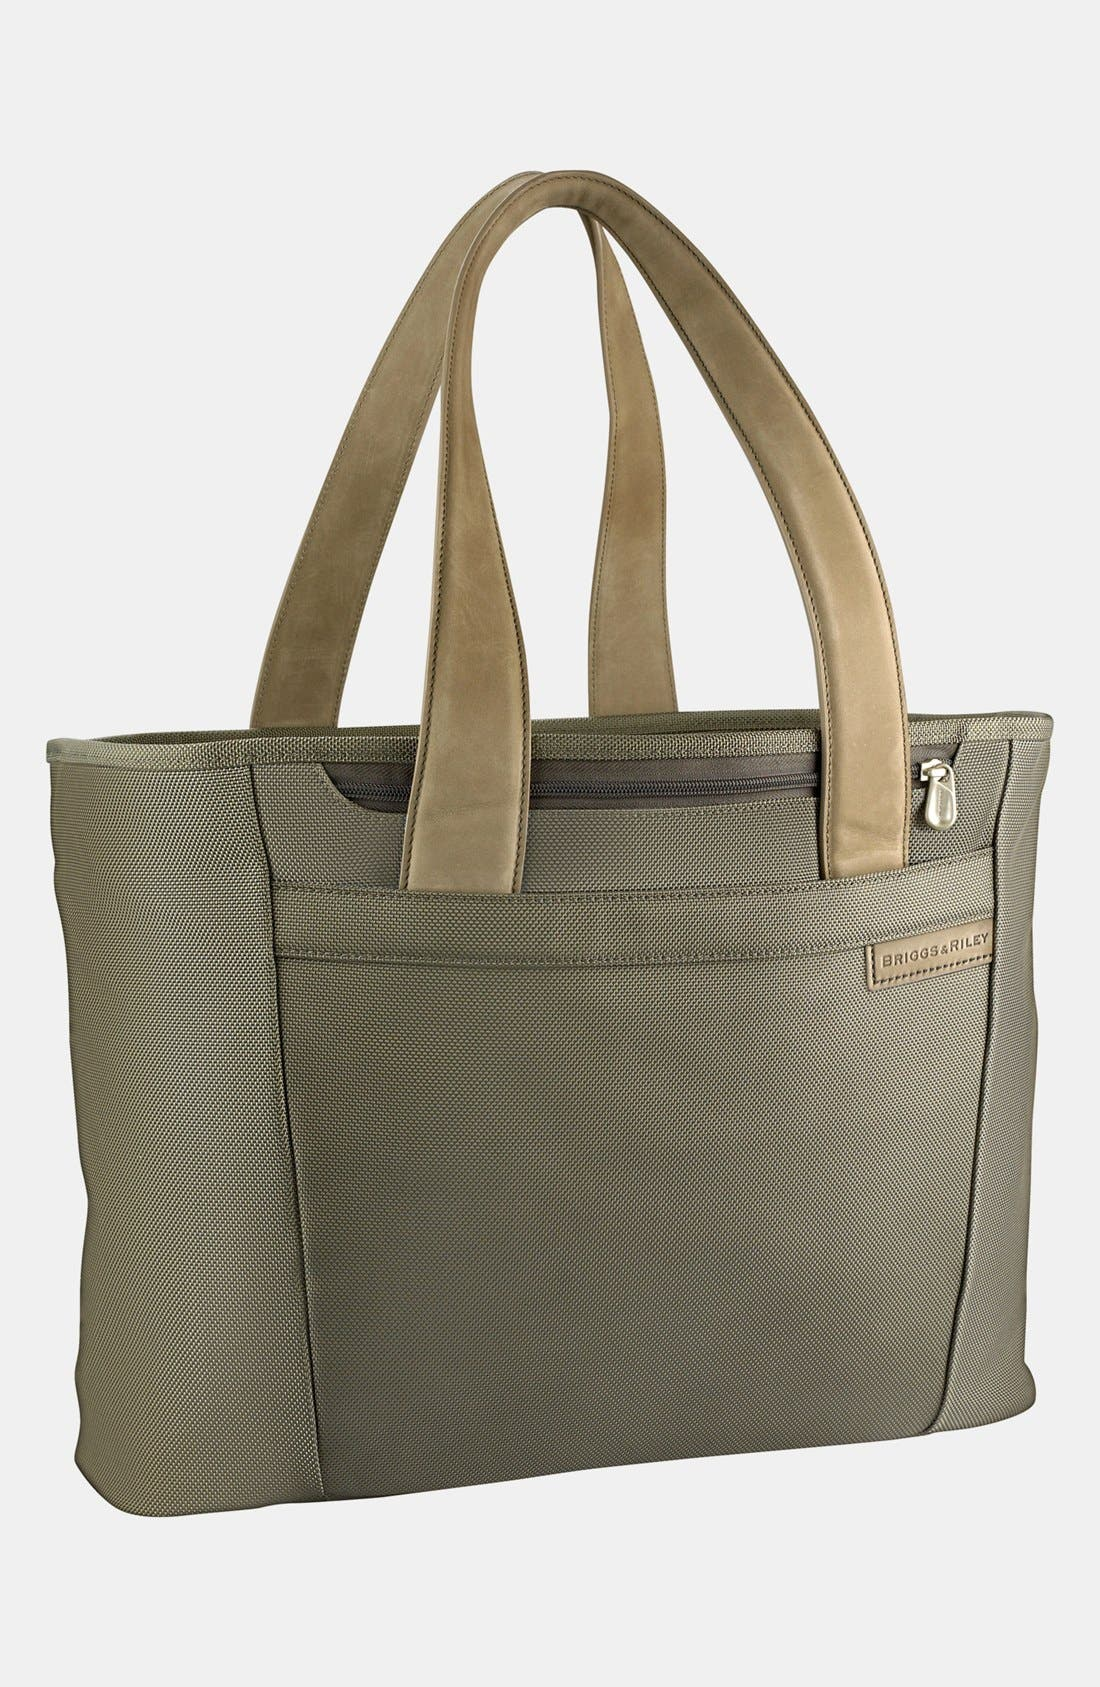 Alternate Image 1 Selected - Briggs & Riley 'Large Baseline' Shopping Tote